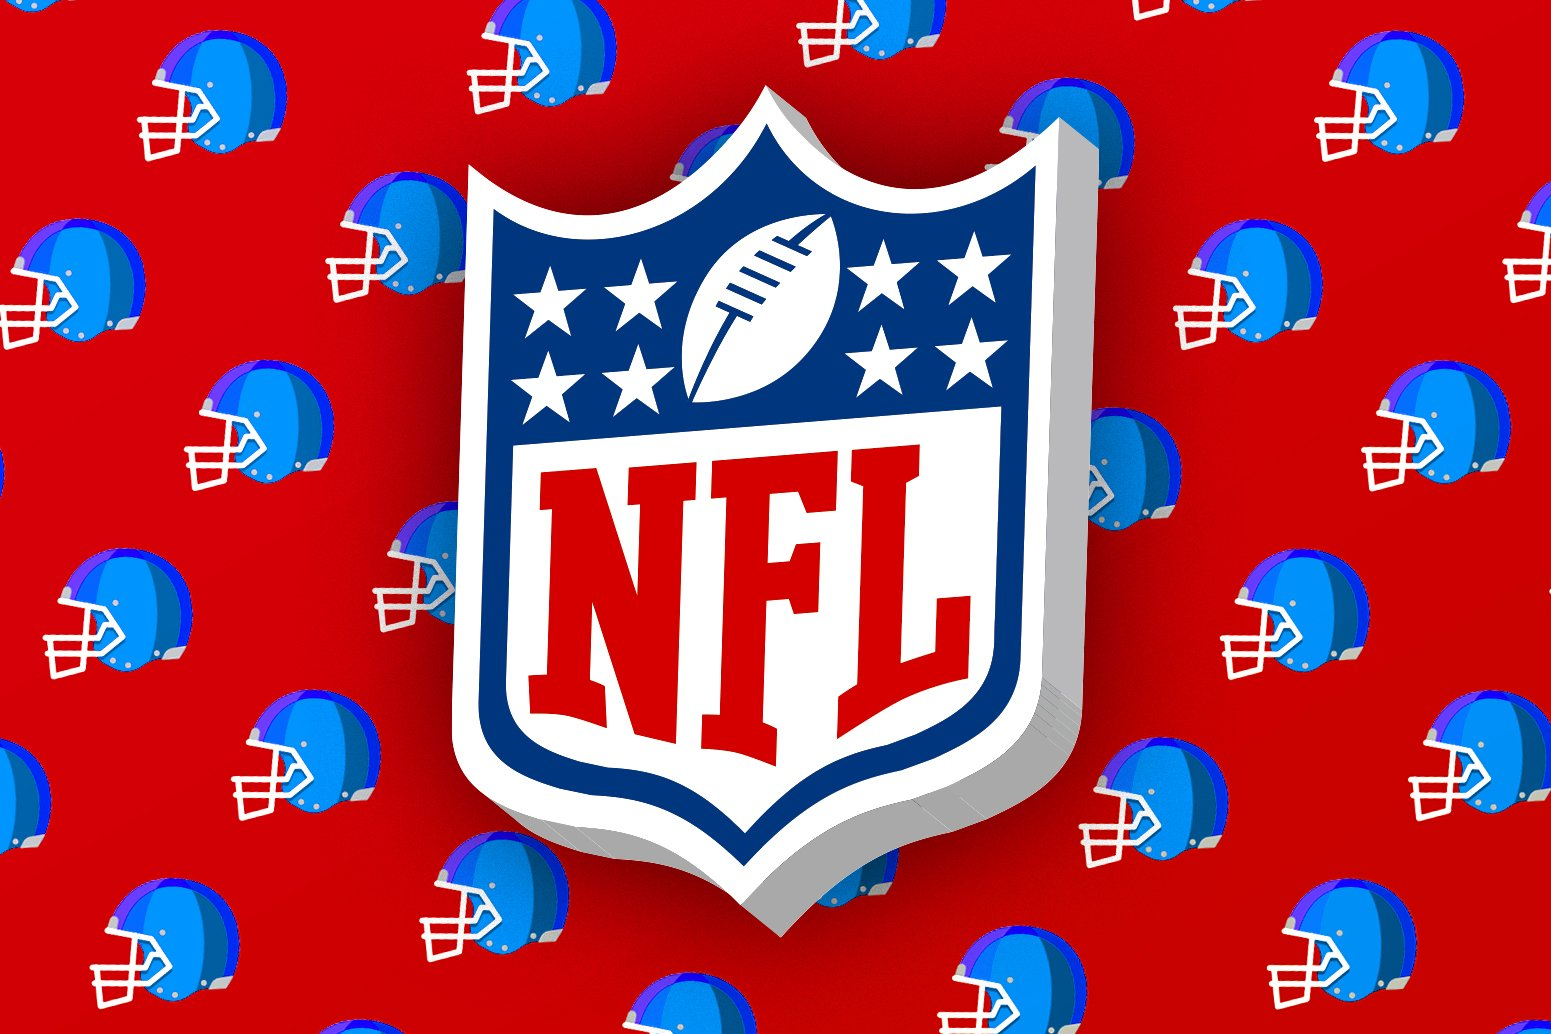 Tracking how NFL advertisers are marketing around the uncertain season